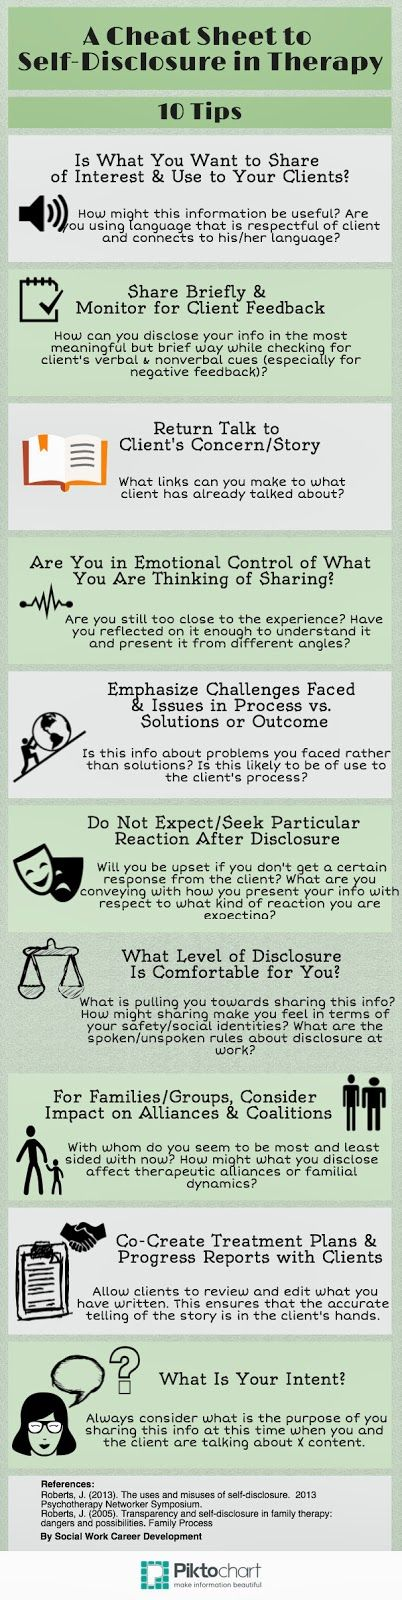 "Social Work Career Development: The Art of Self-Disclosure in Therapy - To help you navigate the tricky waves of communication, this post will be providing you with some of the key take-aways from Janine Roberts, Ed.D.'s talk about ""Therapist Self-Disclosure"" at the Psychotherapy Symposium 2013.  Below is an infographic that summarizes Roberts' key guidelines about self-disclosure for mental health professionals."